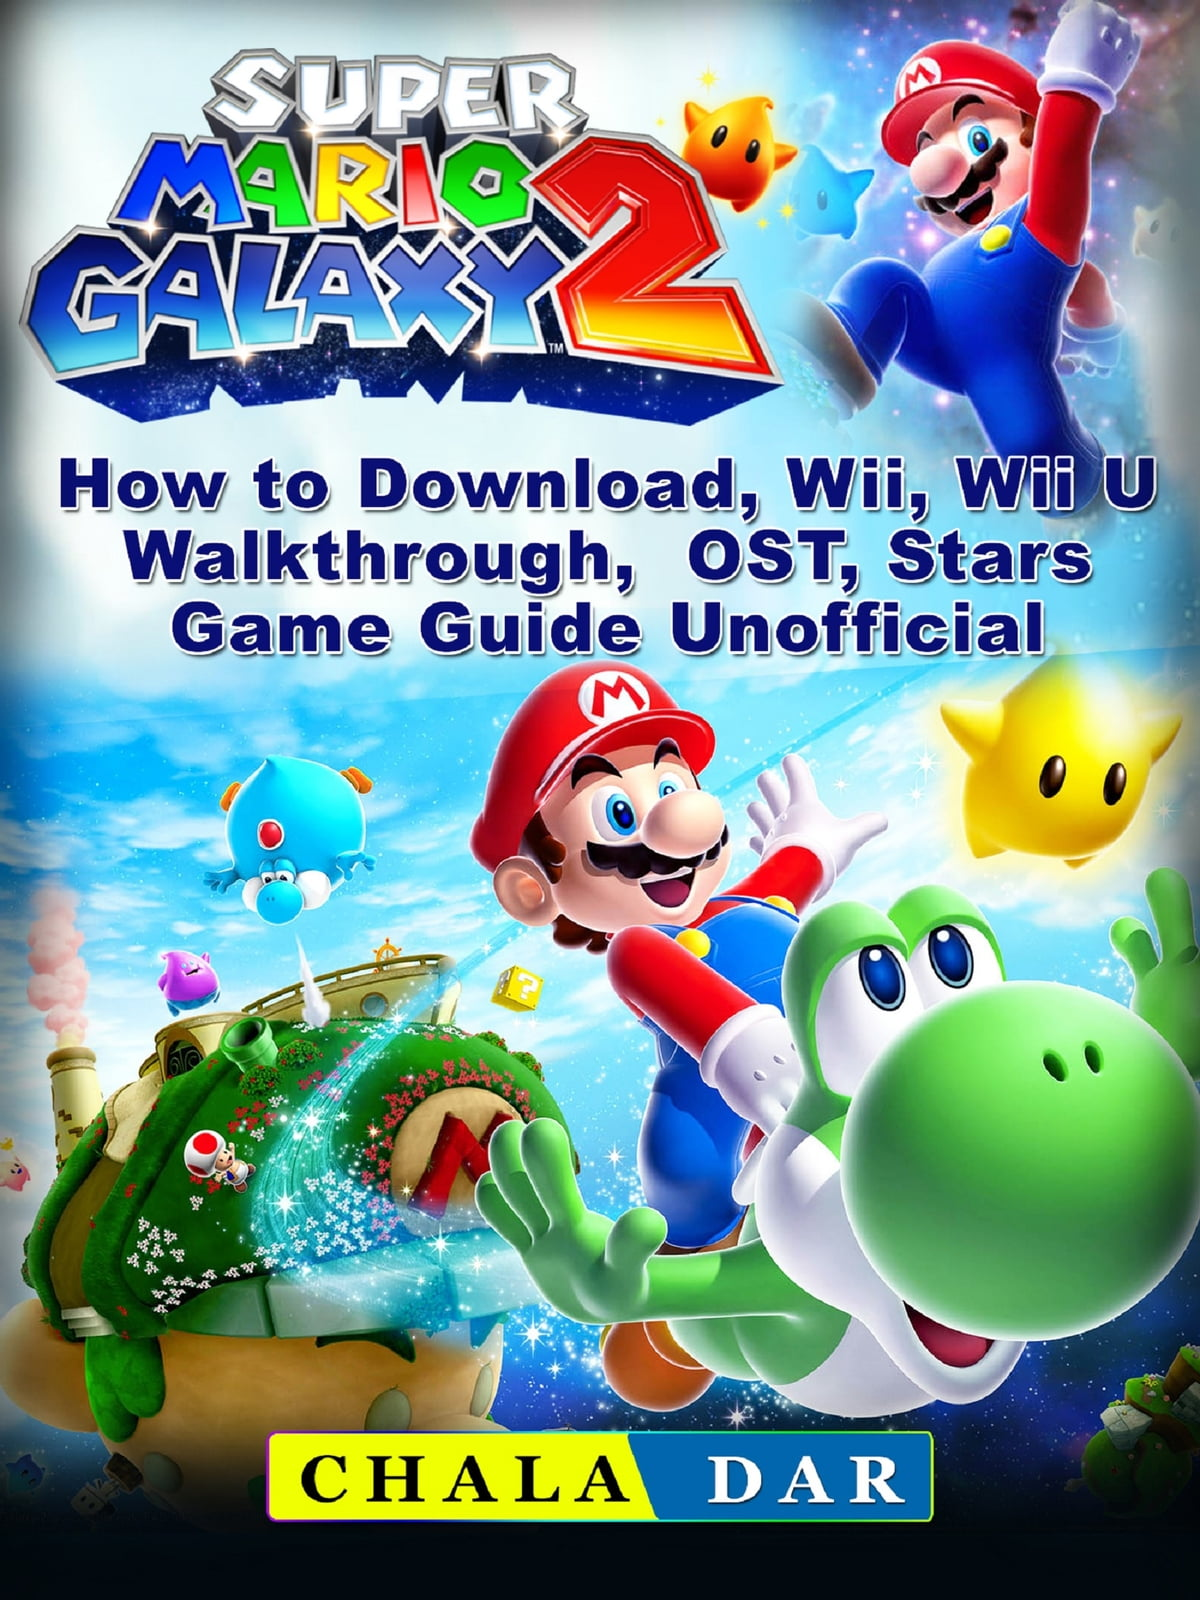 Super Mario Galaxy 2 How to Download, Wii, Wii U, Walkthrough, OST, Stars,  Game Guide Unofficial ebooks by Chala Dar - Rakuten Kobo